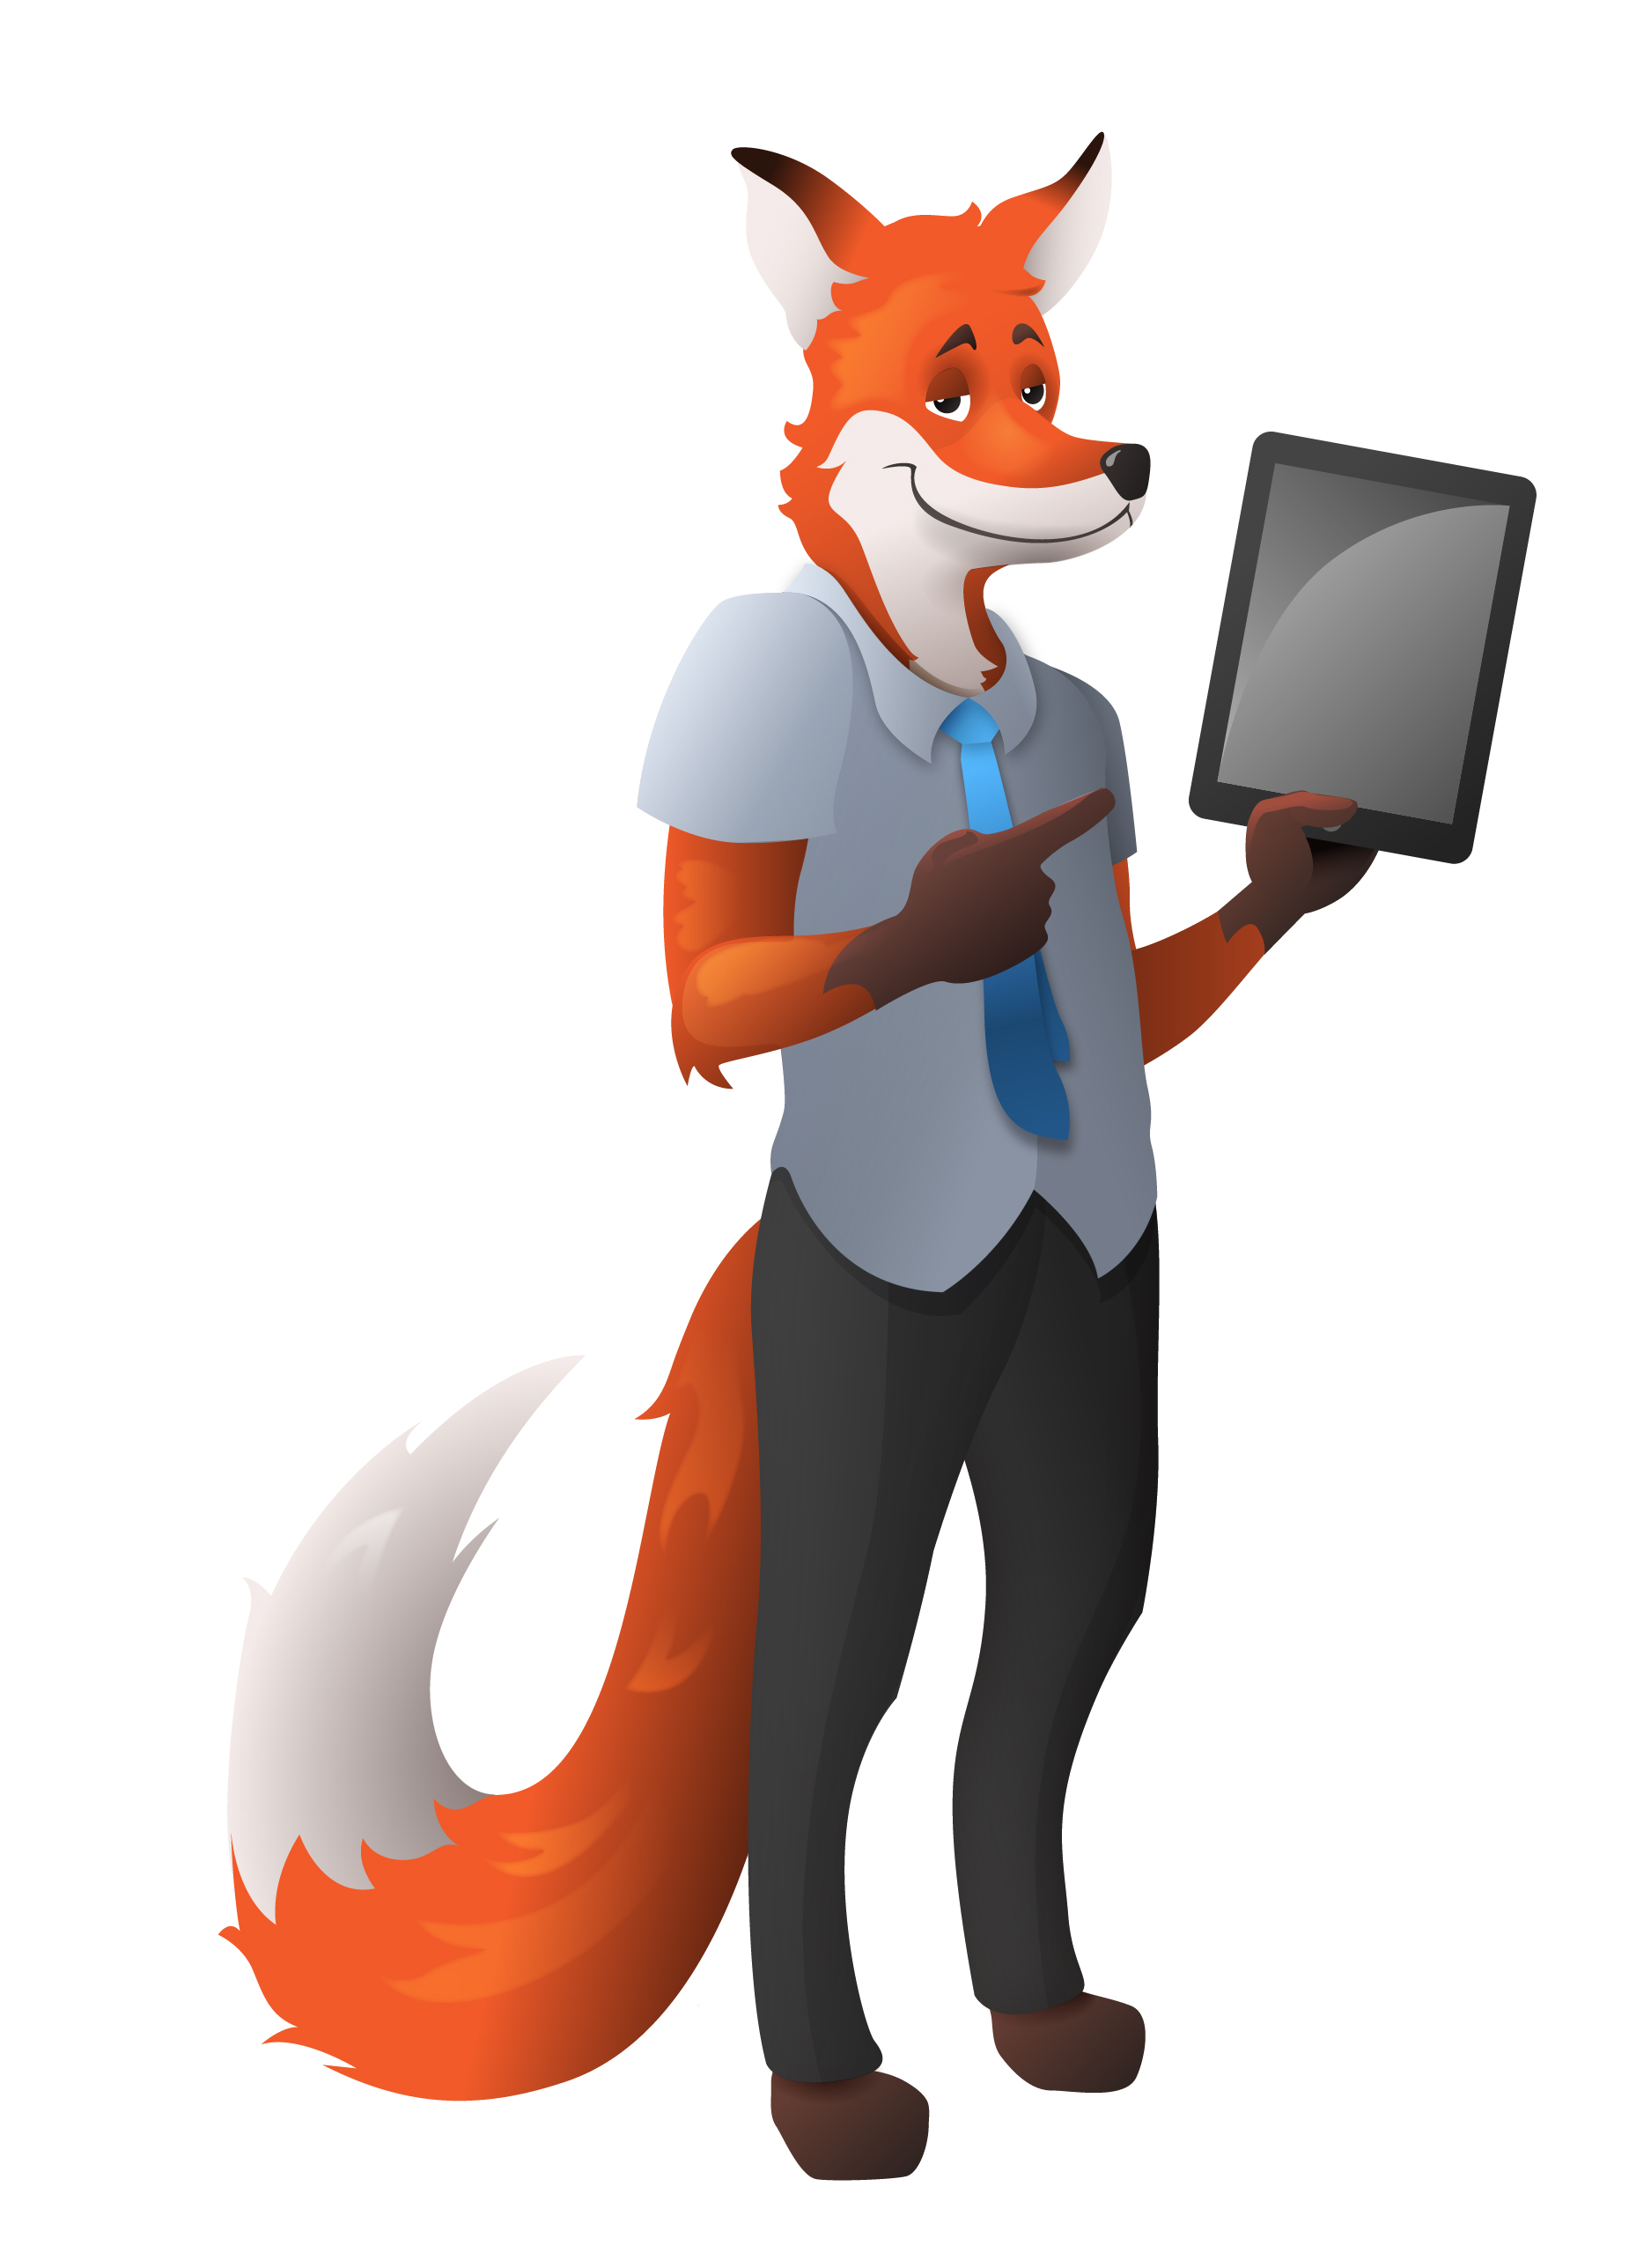 Sly Fox Character 3-3 Final.jpg